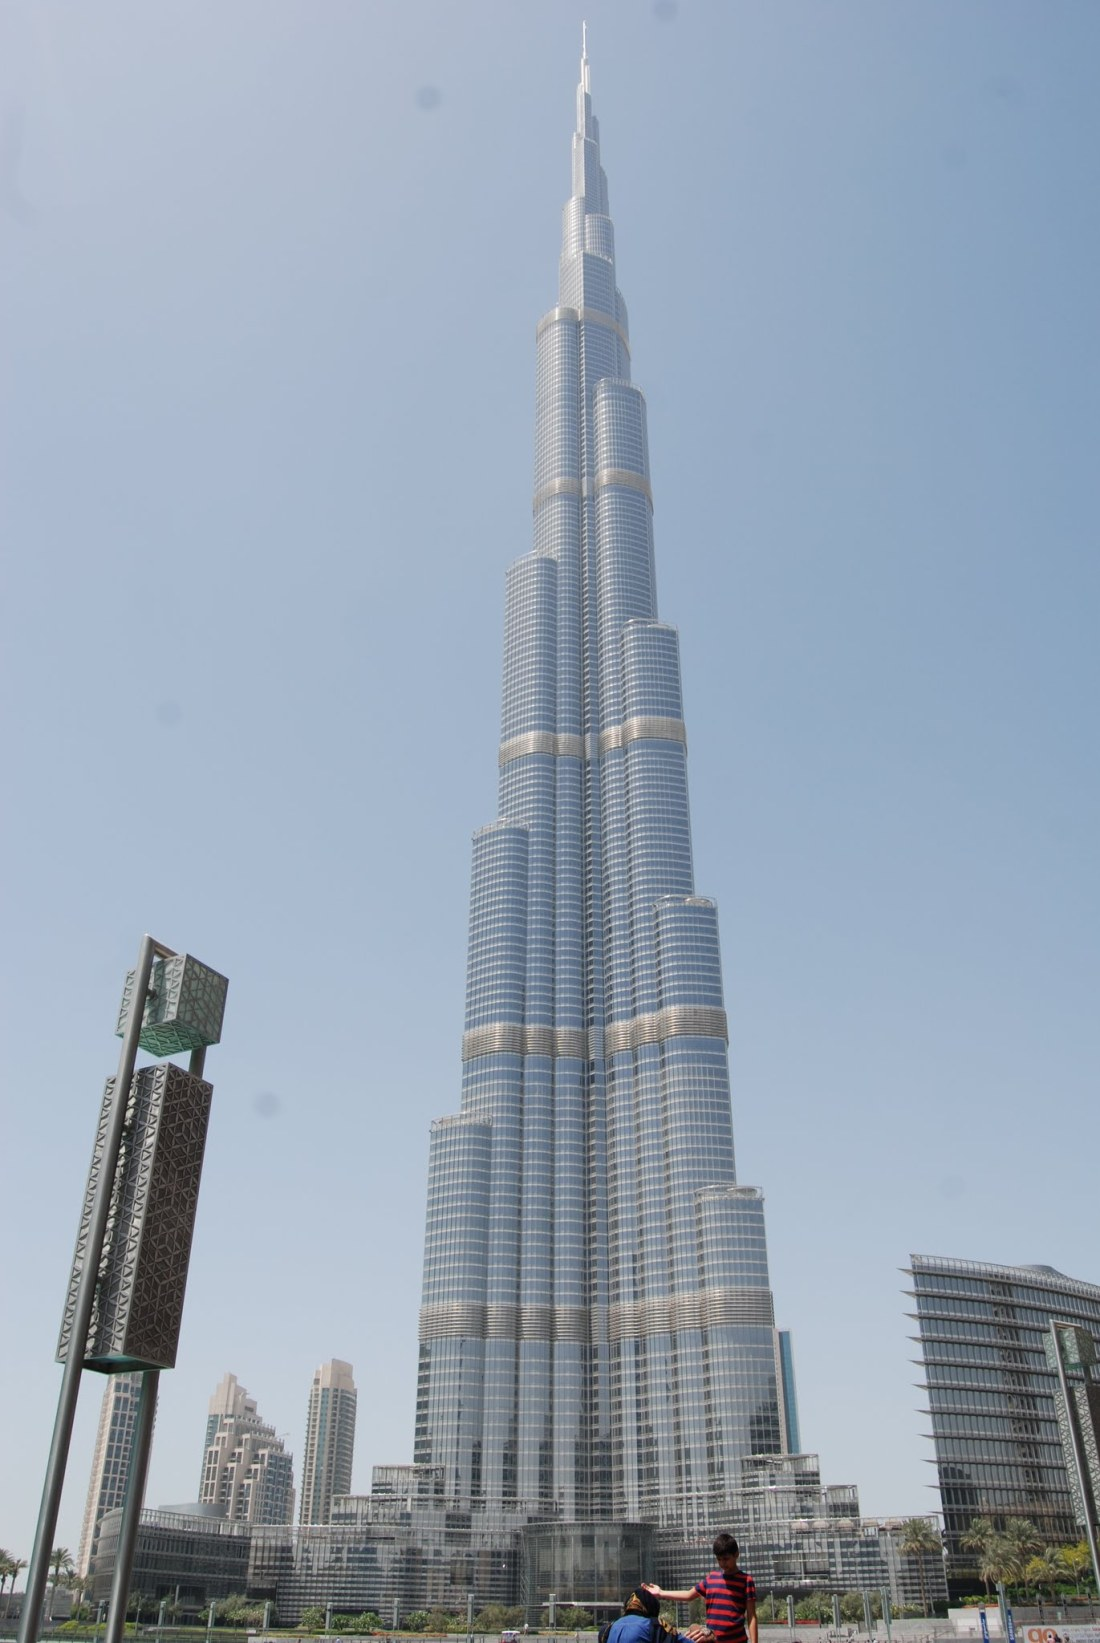 The biggest building in the world